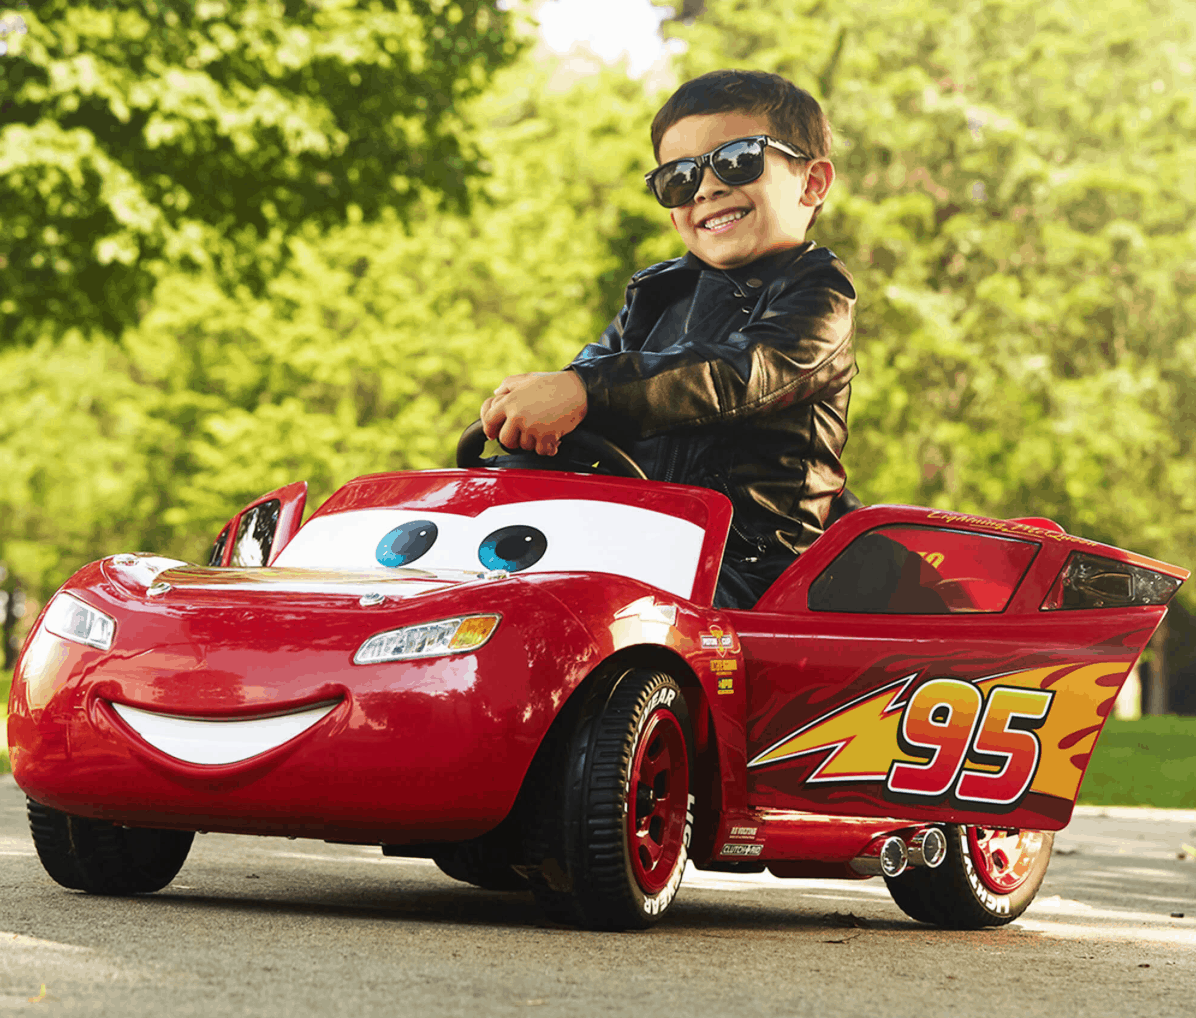 Huffy Disney Pixar Cars 3 Lightning Mcqueen Ride On 99 Reg 149